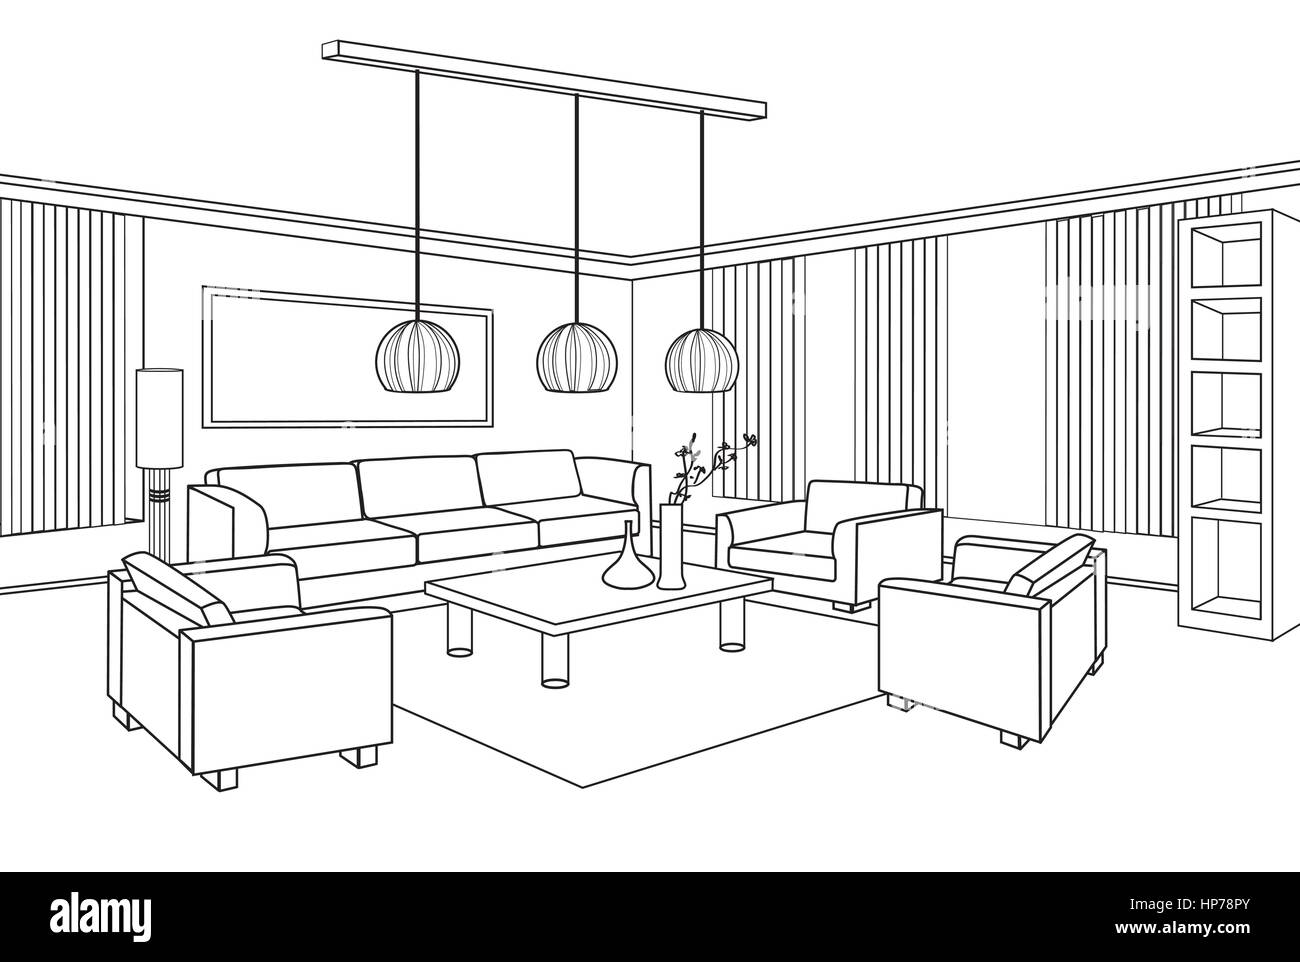 living room view interior outline sketch furniture